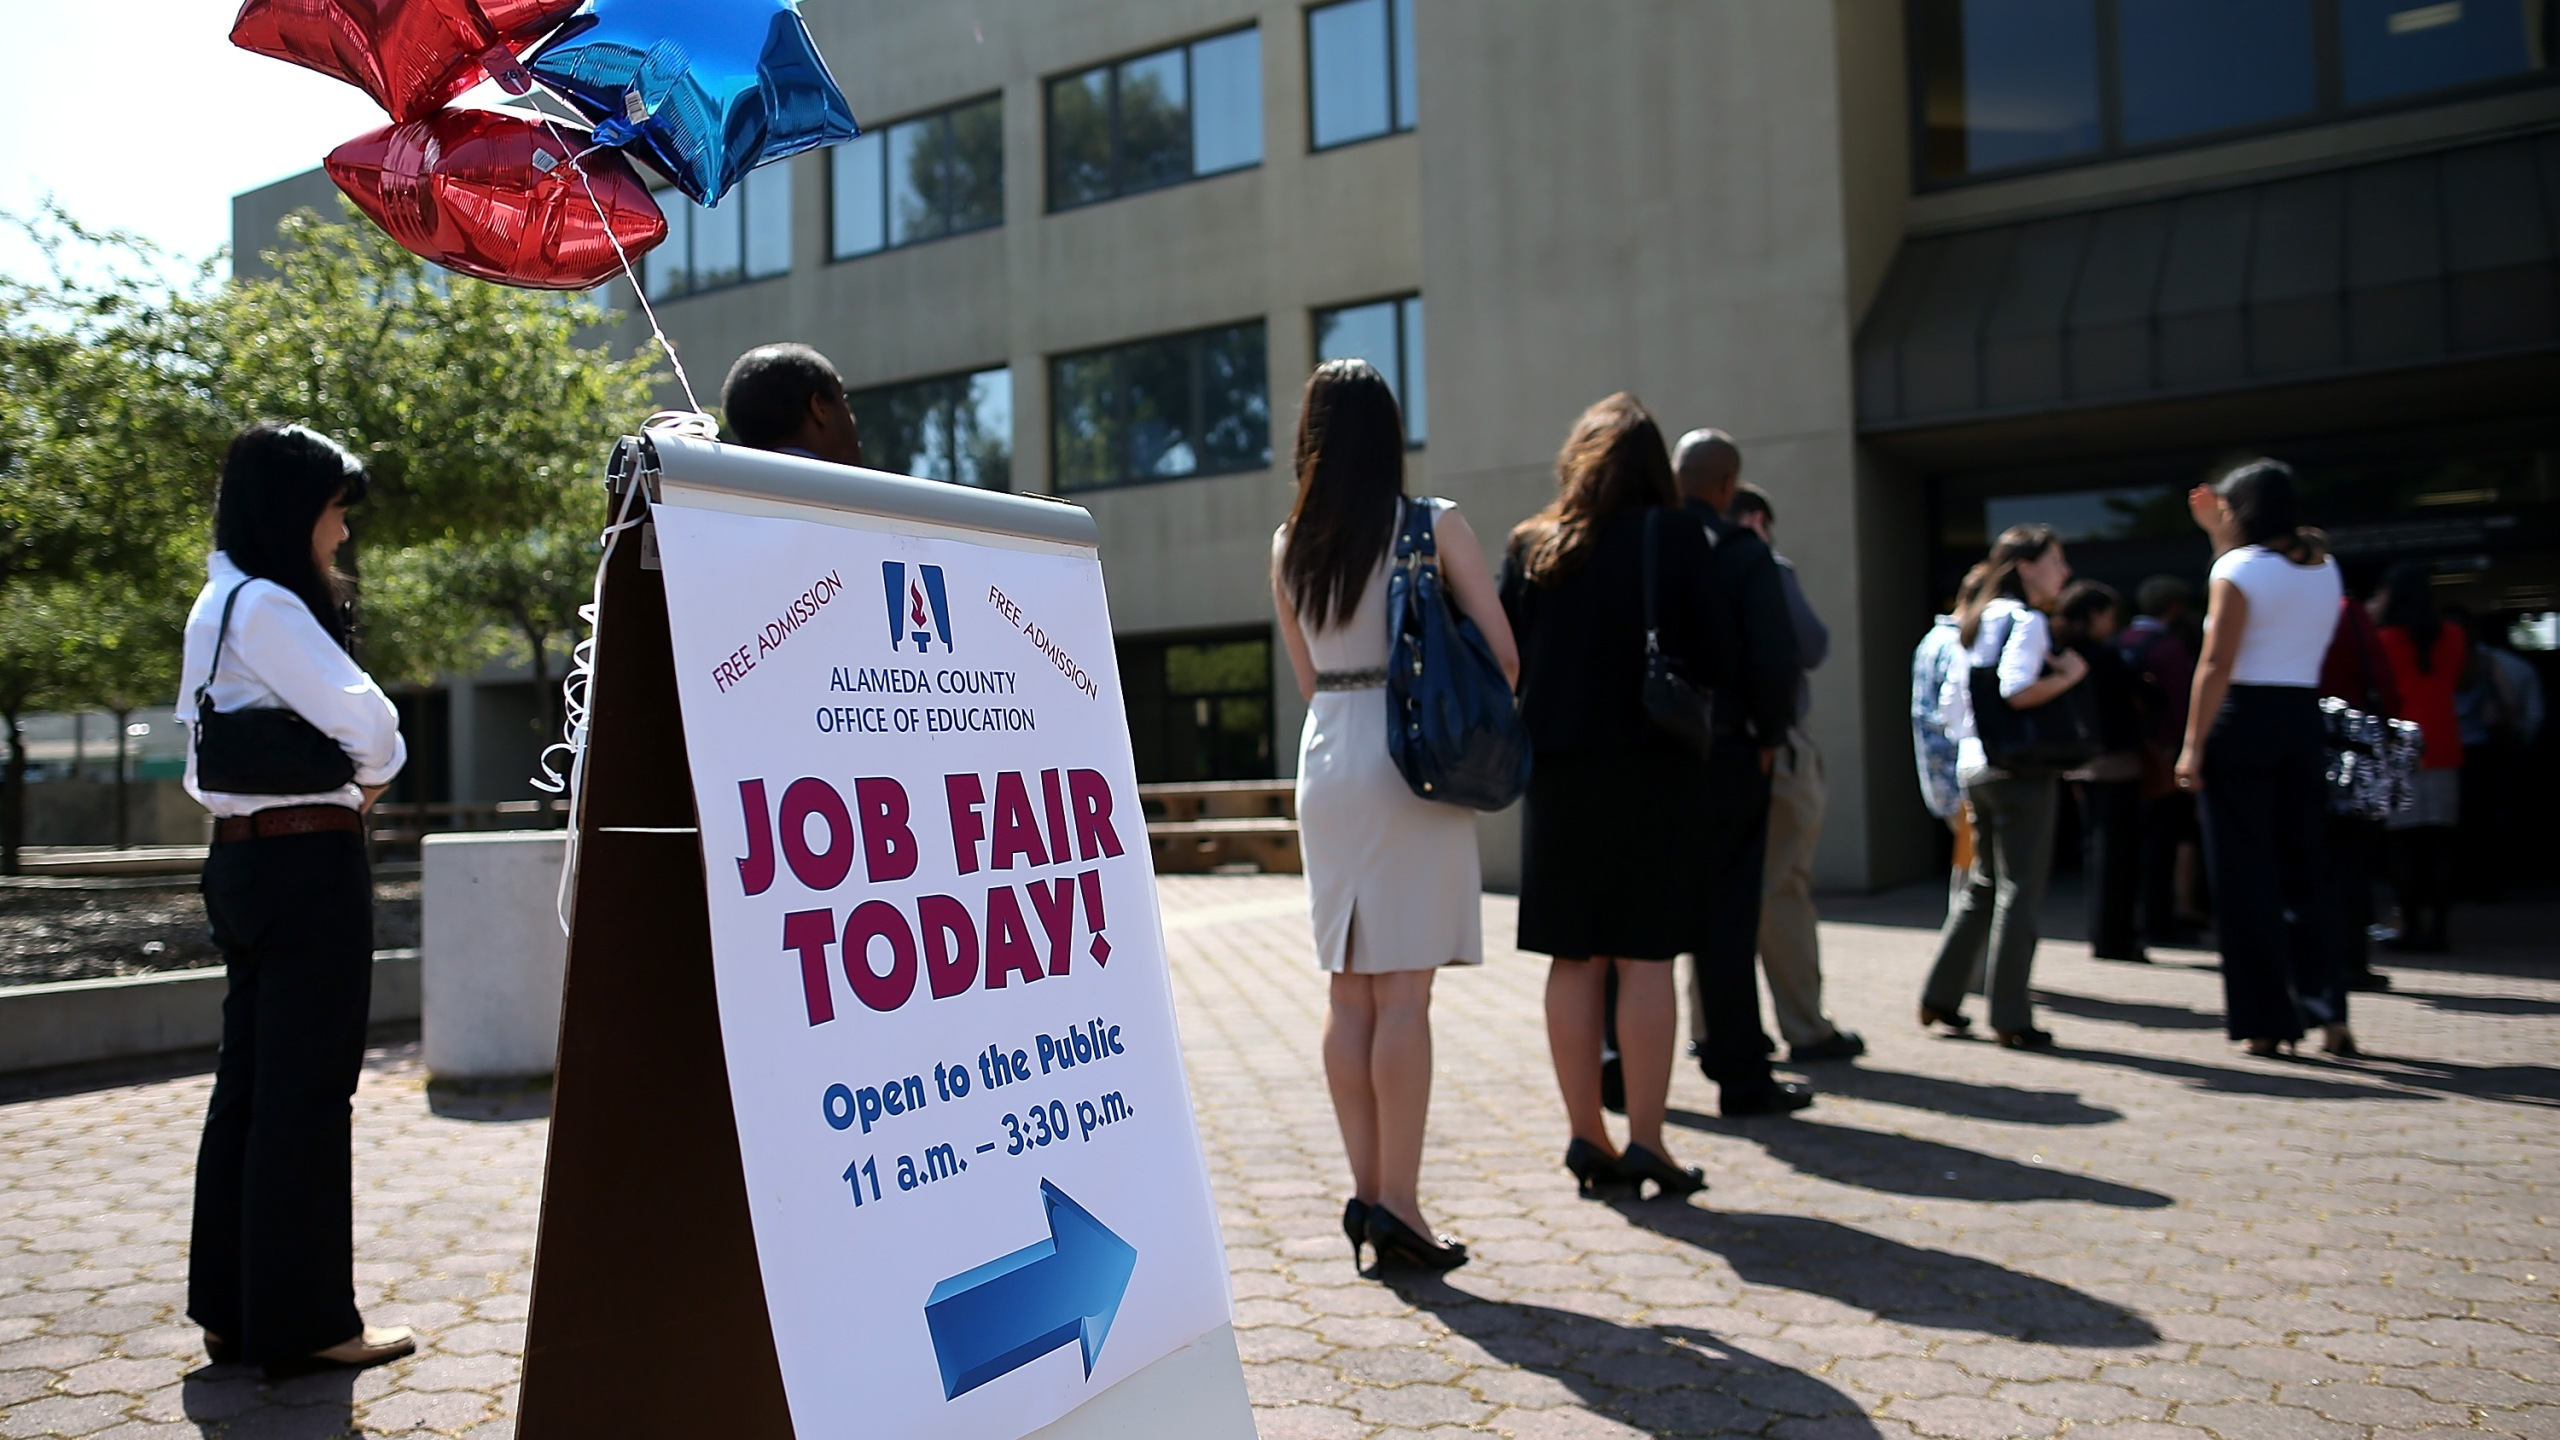 Job seekers line up to enter a job fair at the Alameda County Office of Education on April 24, 2013, in Hayward, California. (Credit: Justin Sullivan/Getty Images)